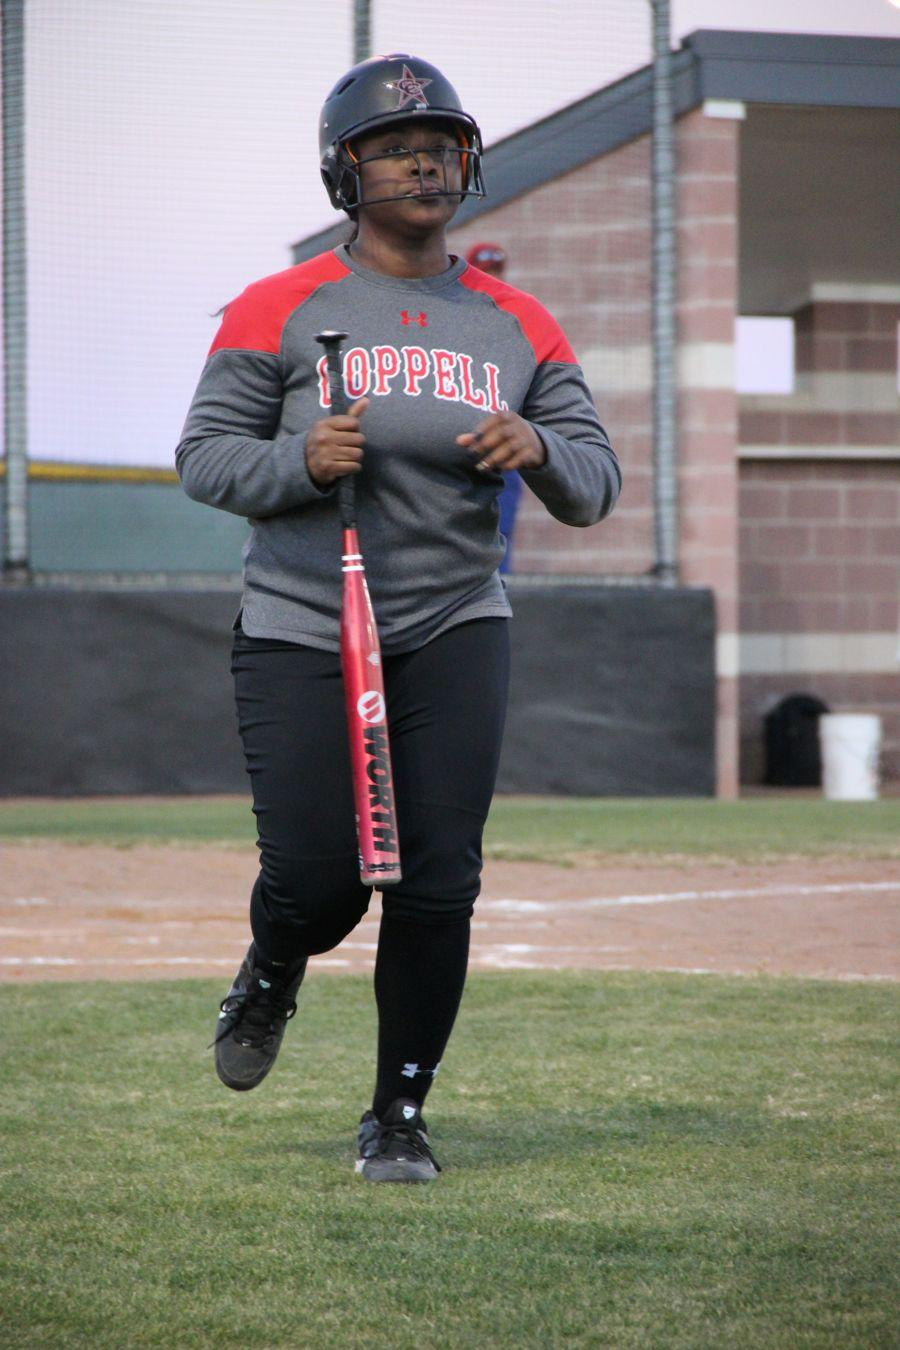 Coppell+High+School+junior+Adaqu+Ngwu+runs+runs+to+the+dugout+at+the+Coppell+ISD+baseball%2Fsoftball+complex.+Coppell+JV+II+scrimmaged+against+Allen+on+Monday.%0A